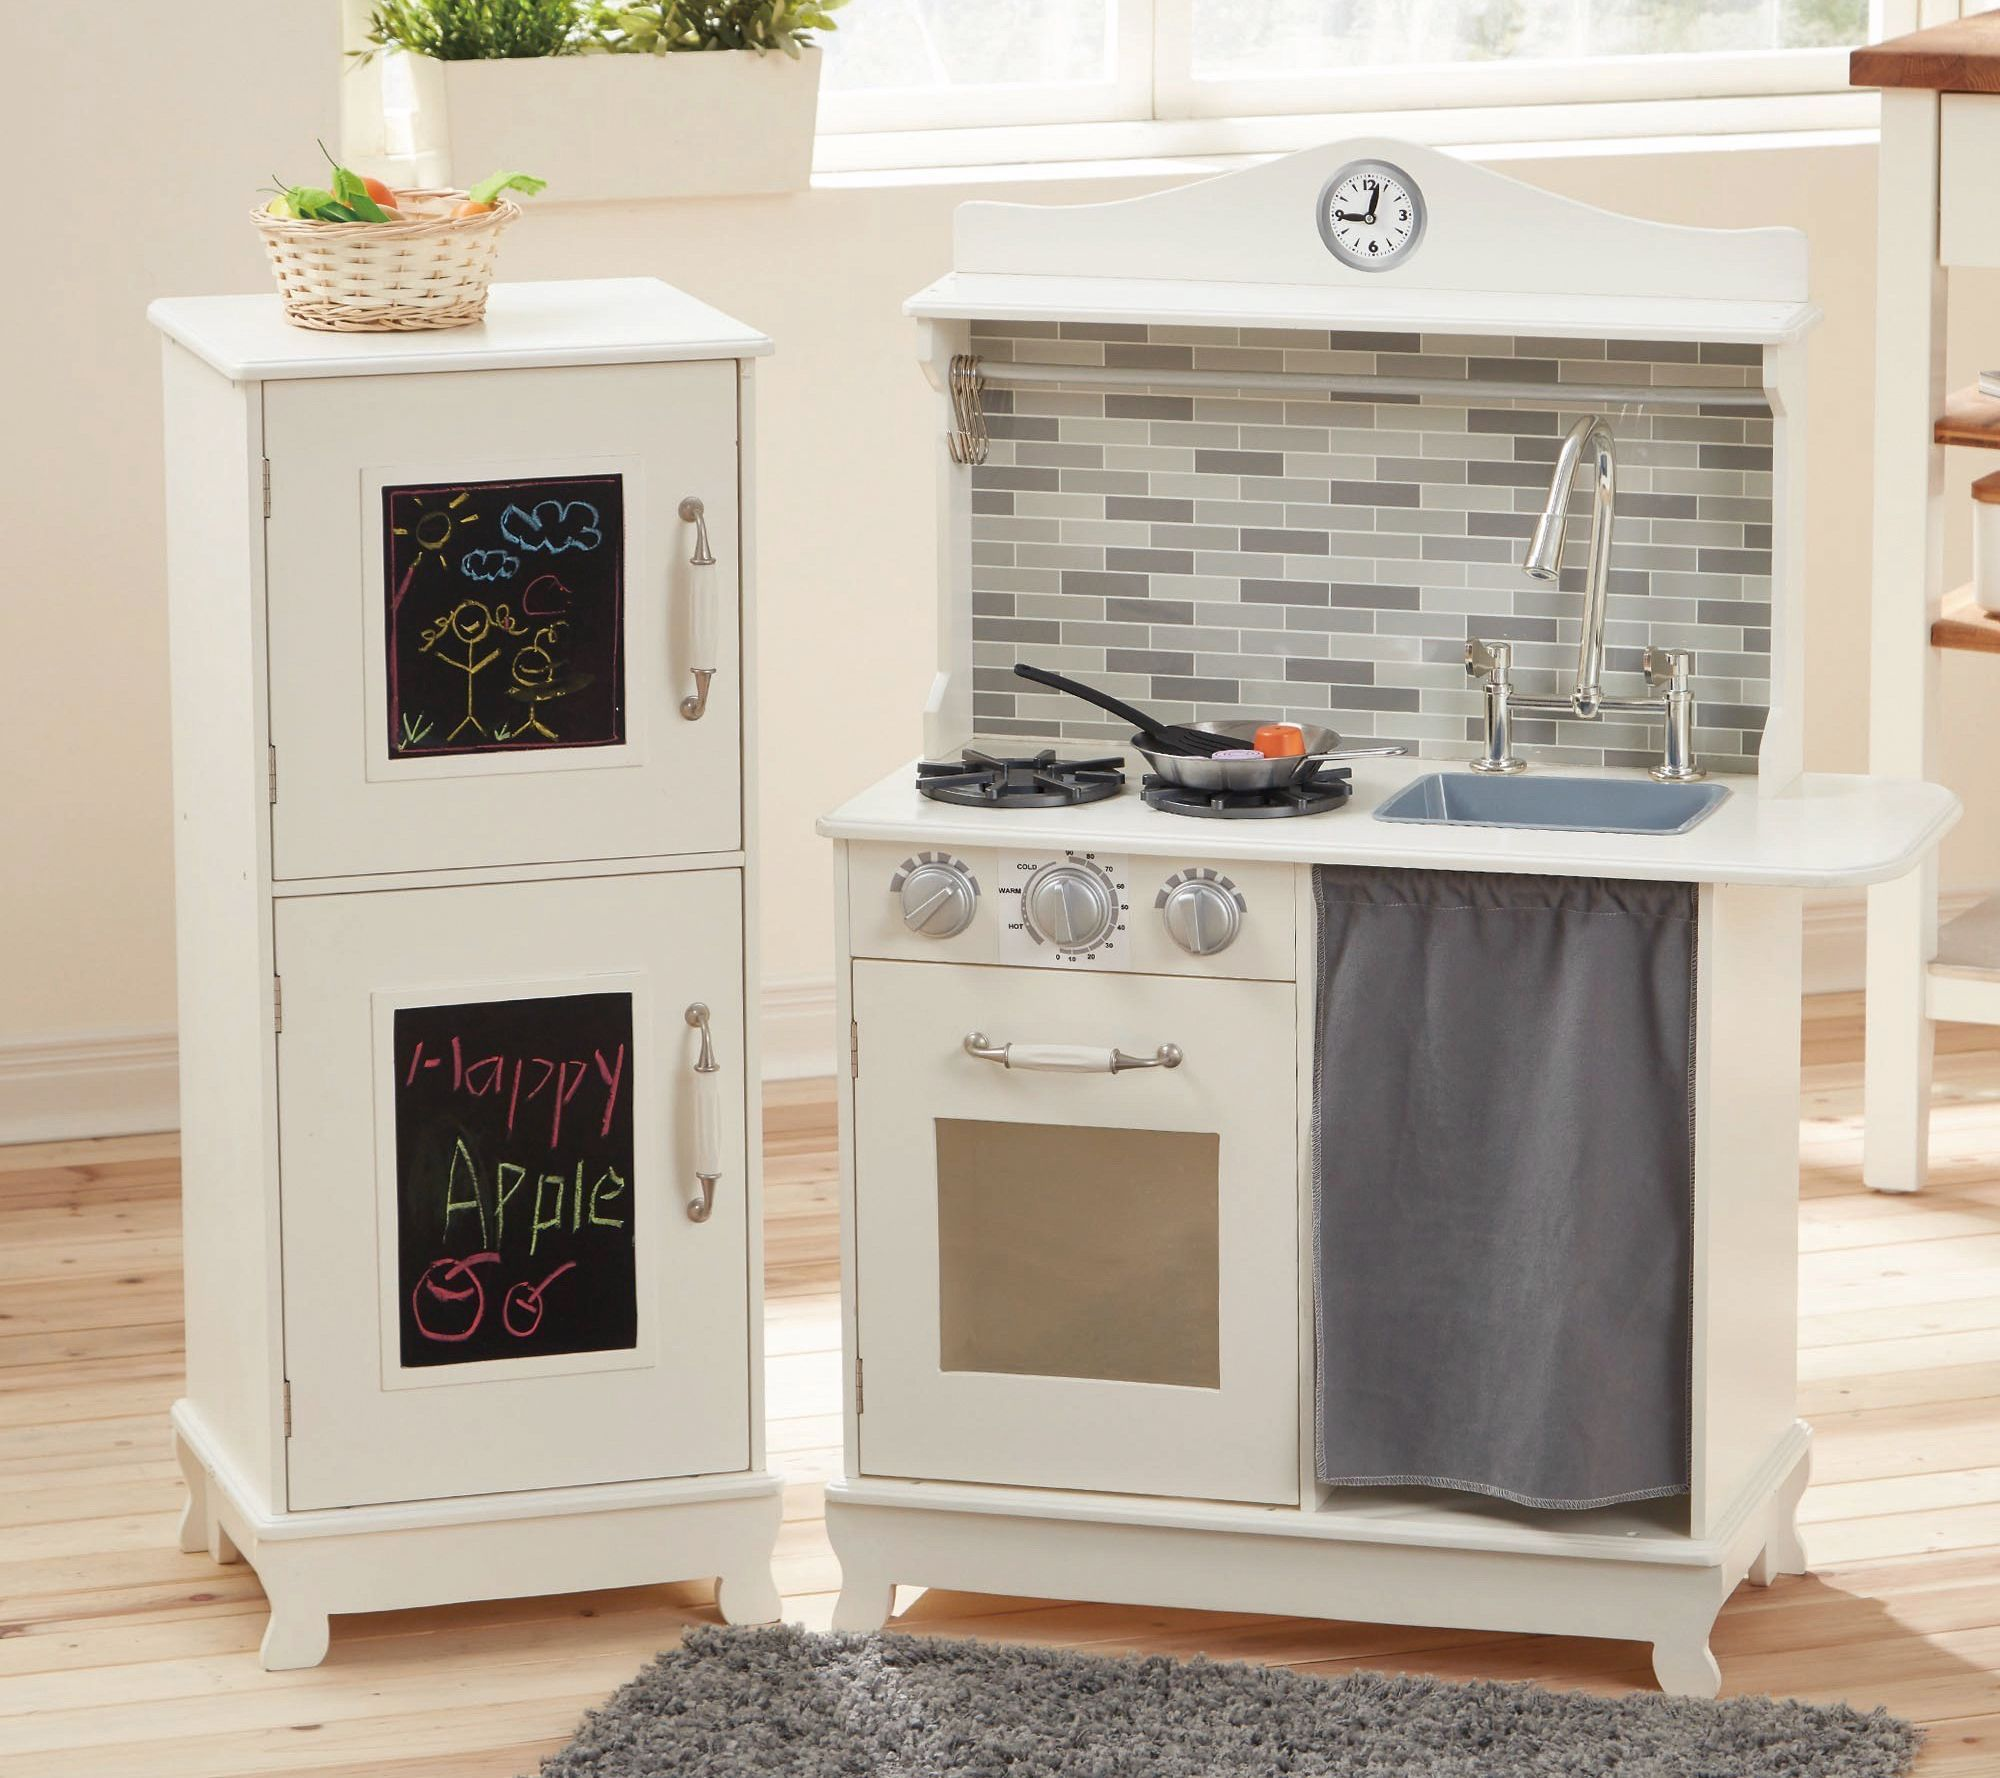 Teamson Kids Farmhouse Kitchen with Stove & Refrigerator - QVC.com